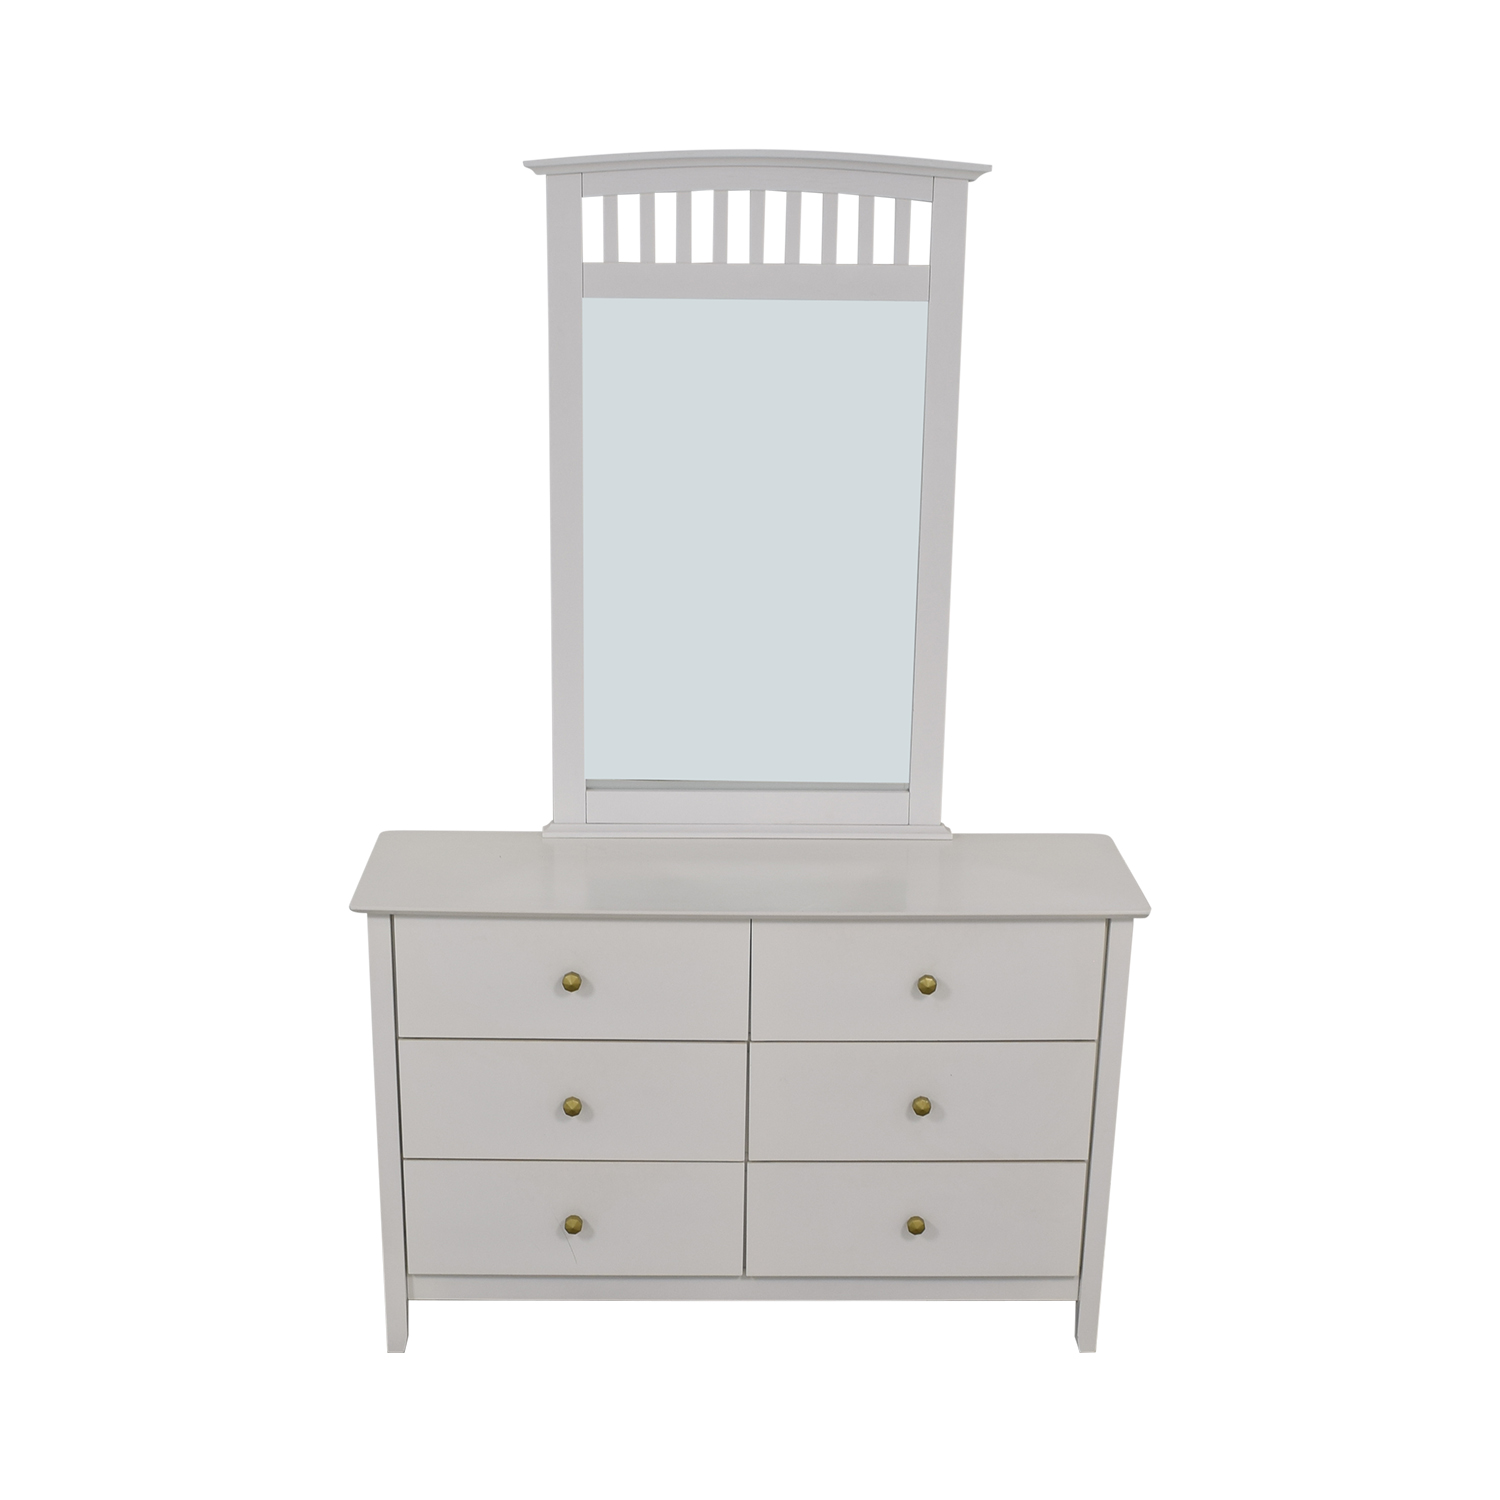 Bob's Discount Furniture Bob's Discount Furniture White Six-Drawer Dresser with Mirror nyc